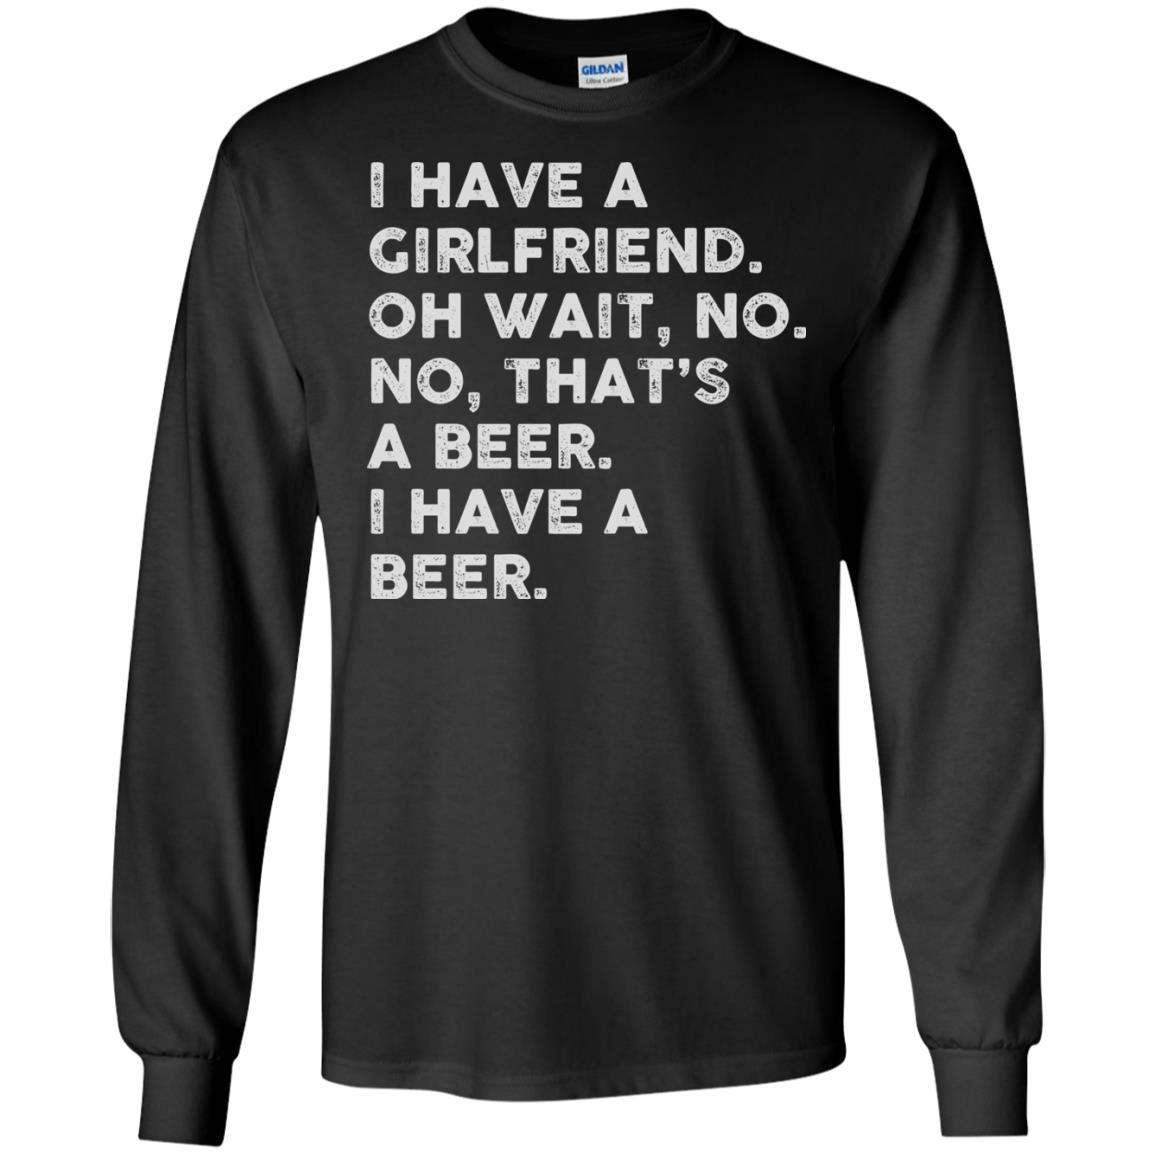 image 2181 - I have a girlfriend oh wait No No that's a beer shirt, hoodie